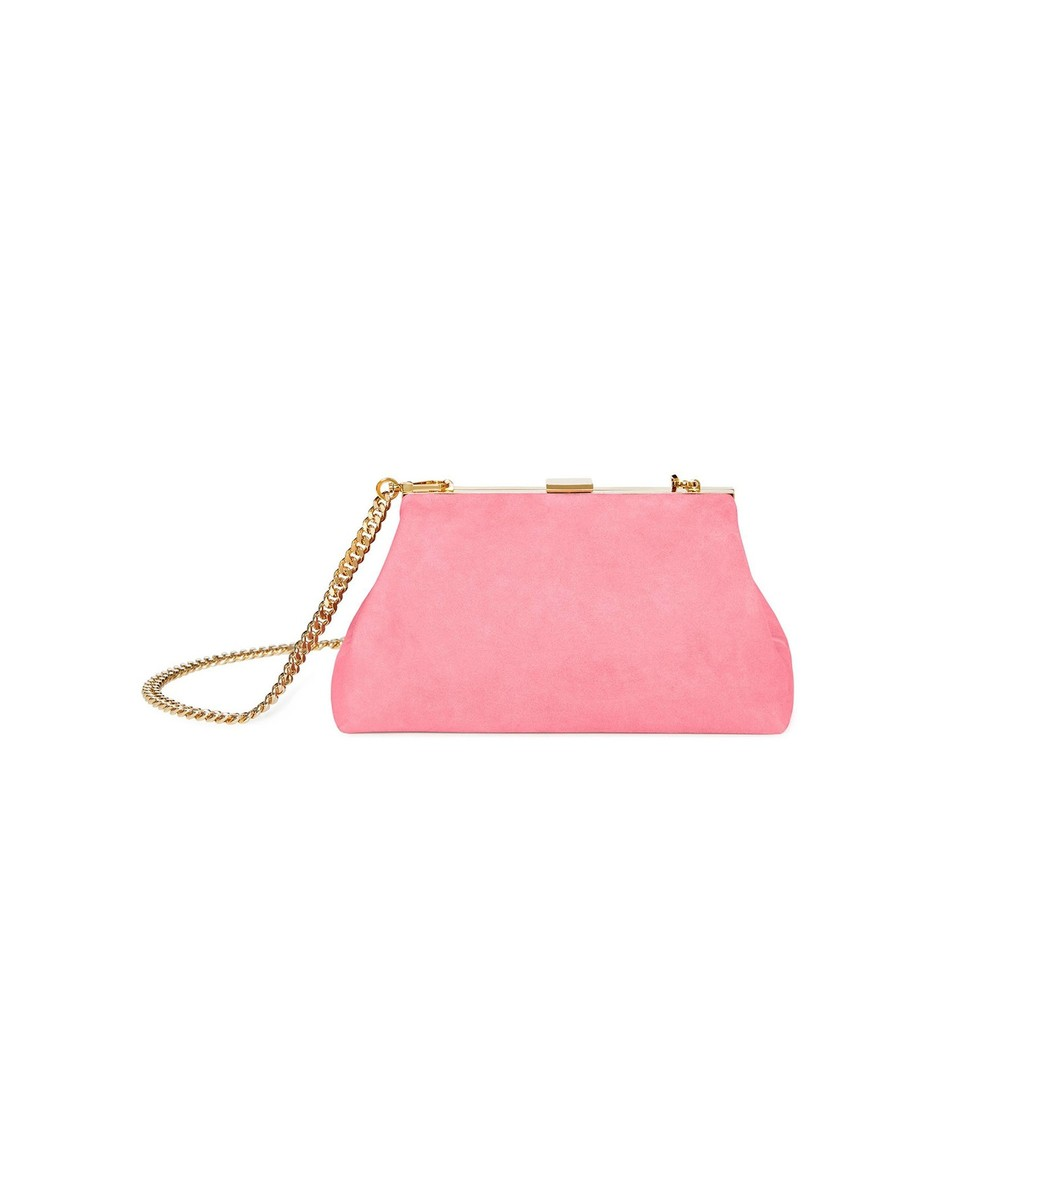 MANSUR GAVRIEL Blush Mini Volume Clutch Bag